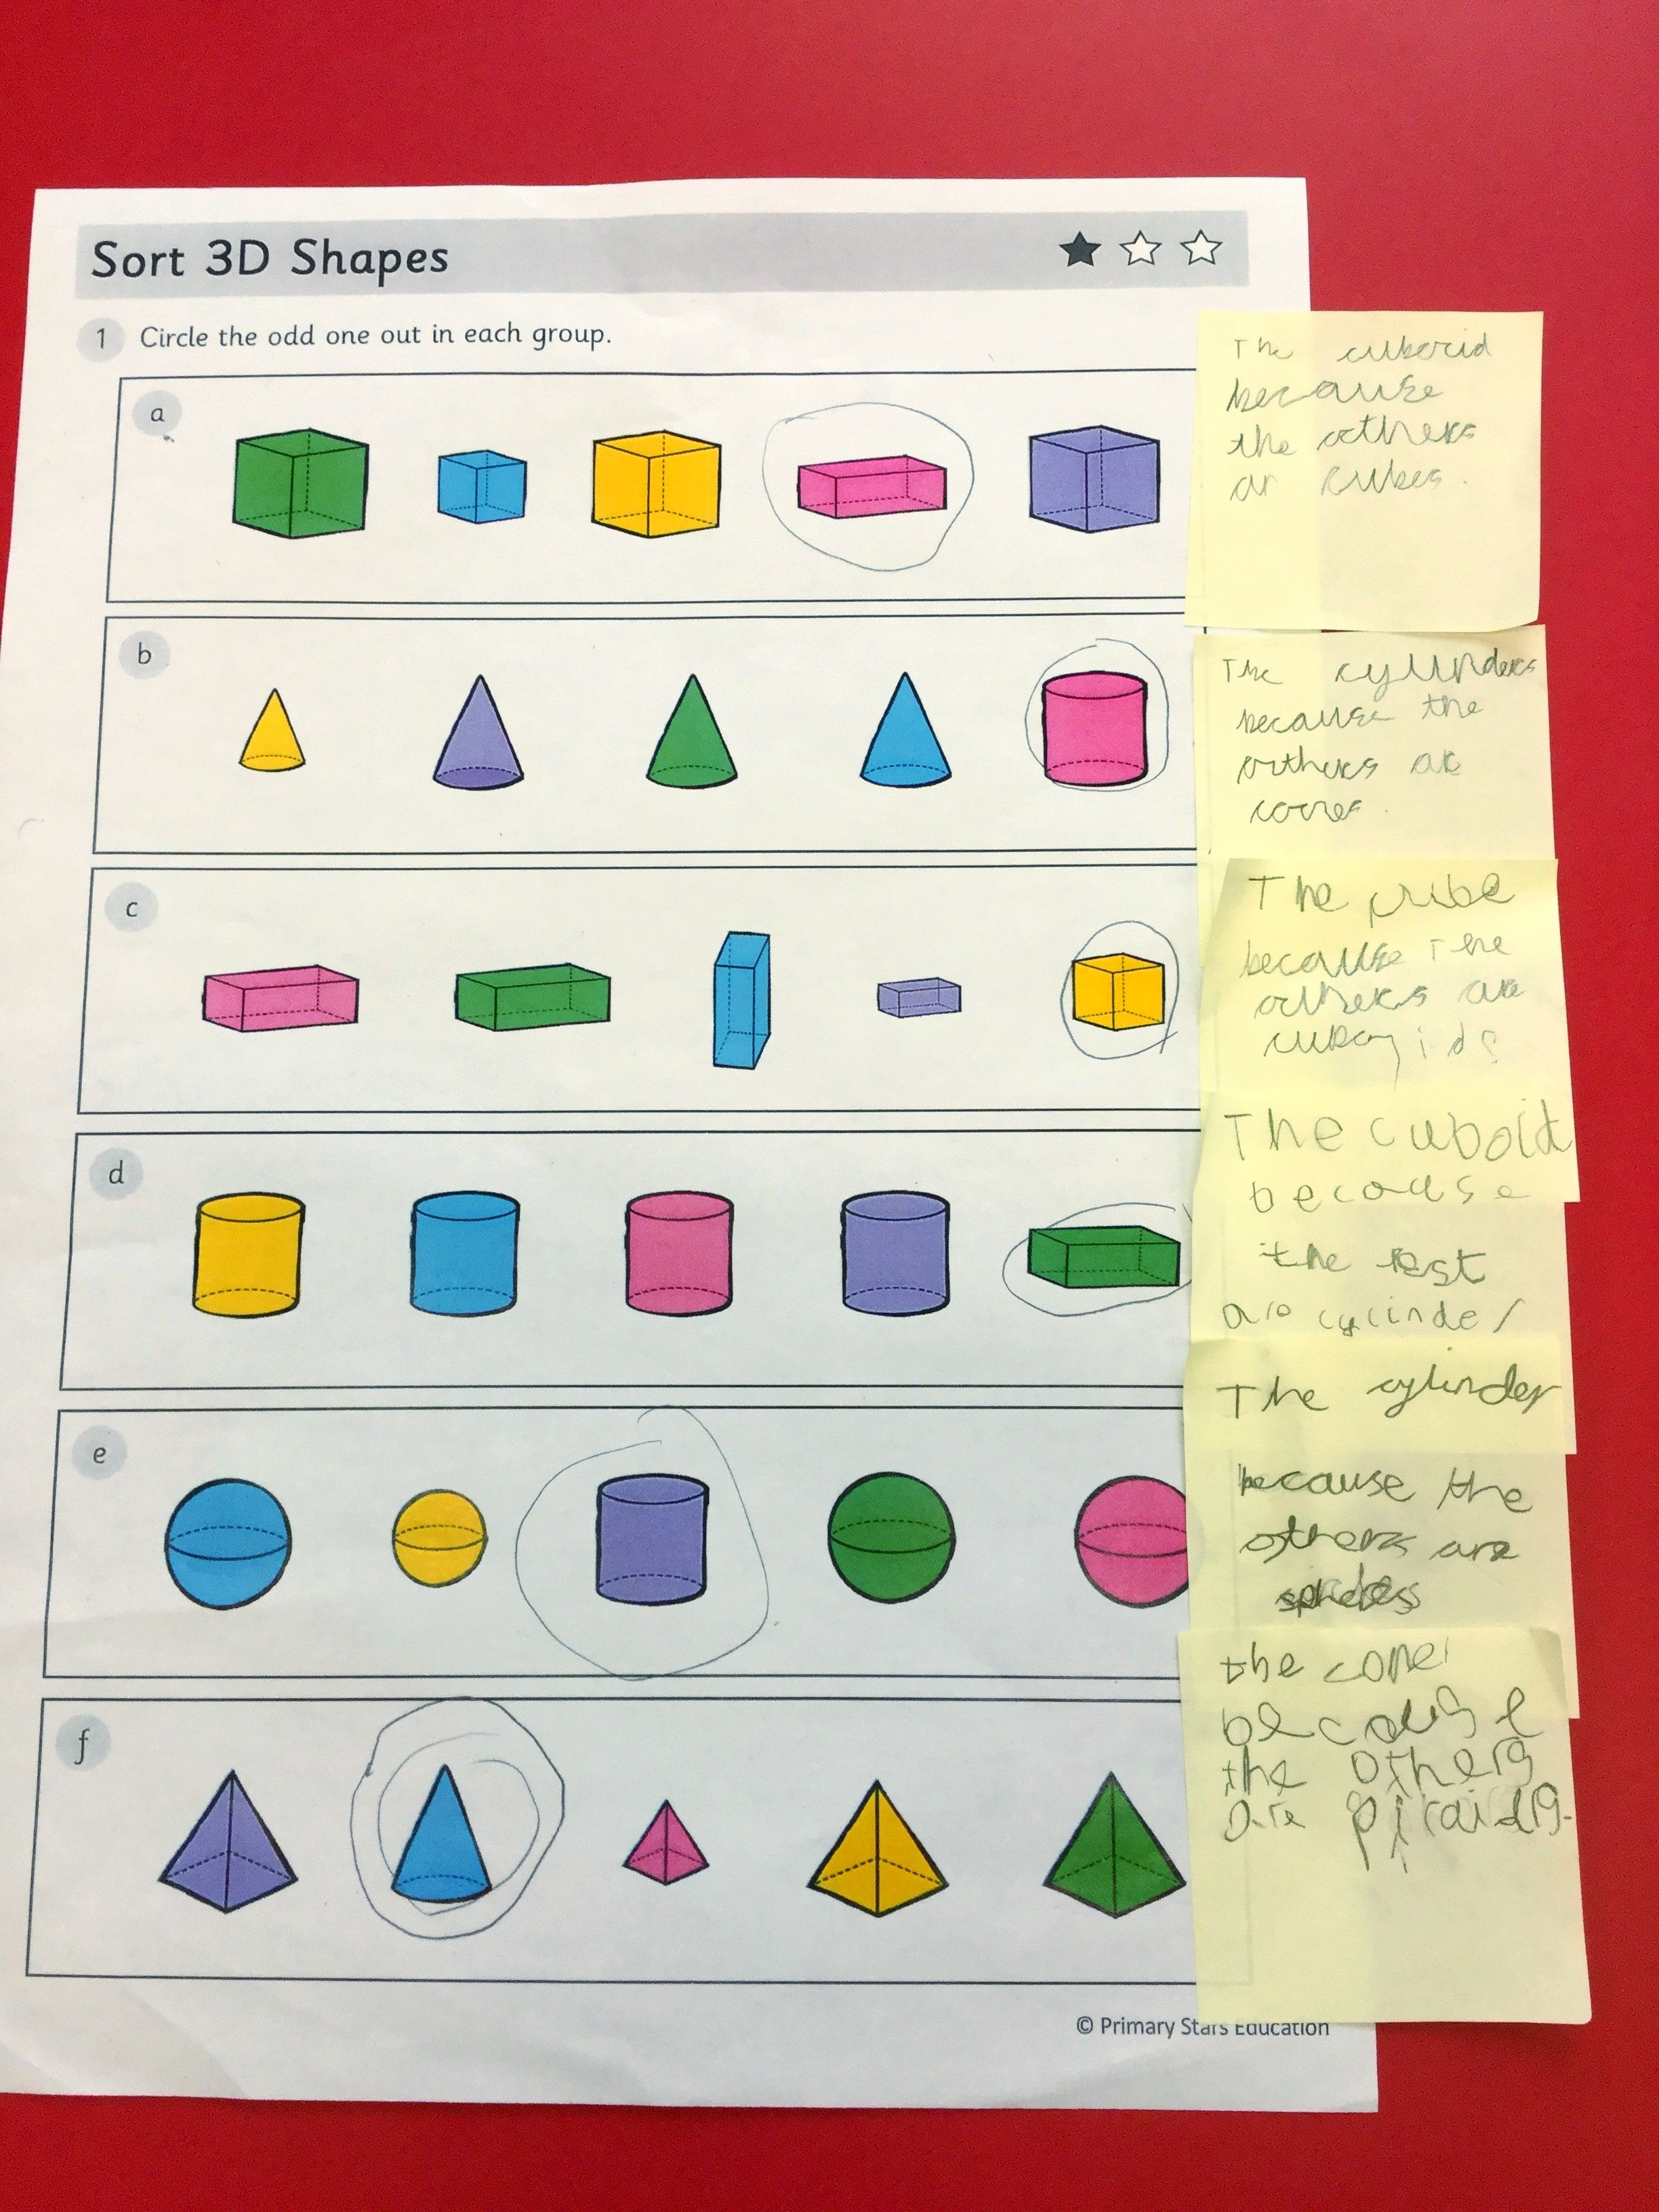 3d Shapes Odd One Out Geometry Mastery Maths Singapore Maths Mastery Maths Singapore Math Math [ 3264 x 2448 Pixel ]